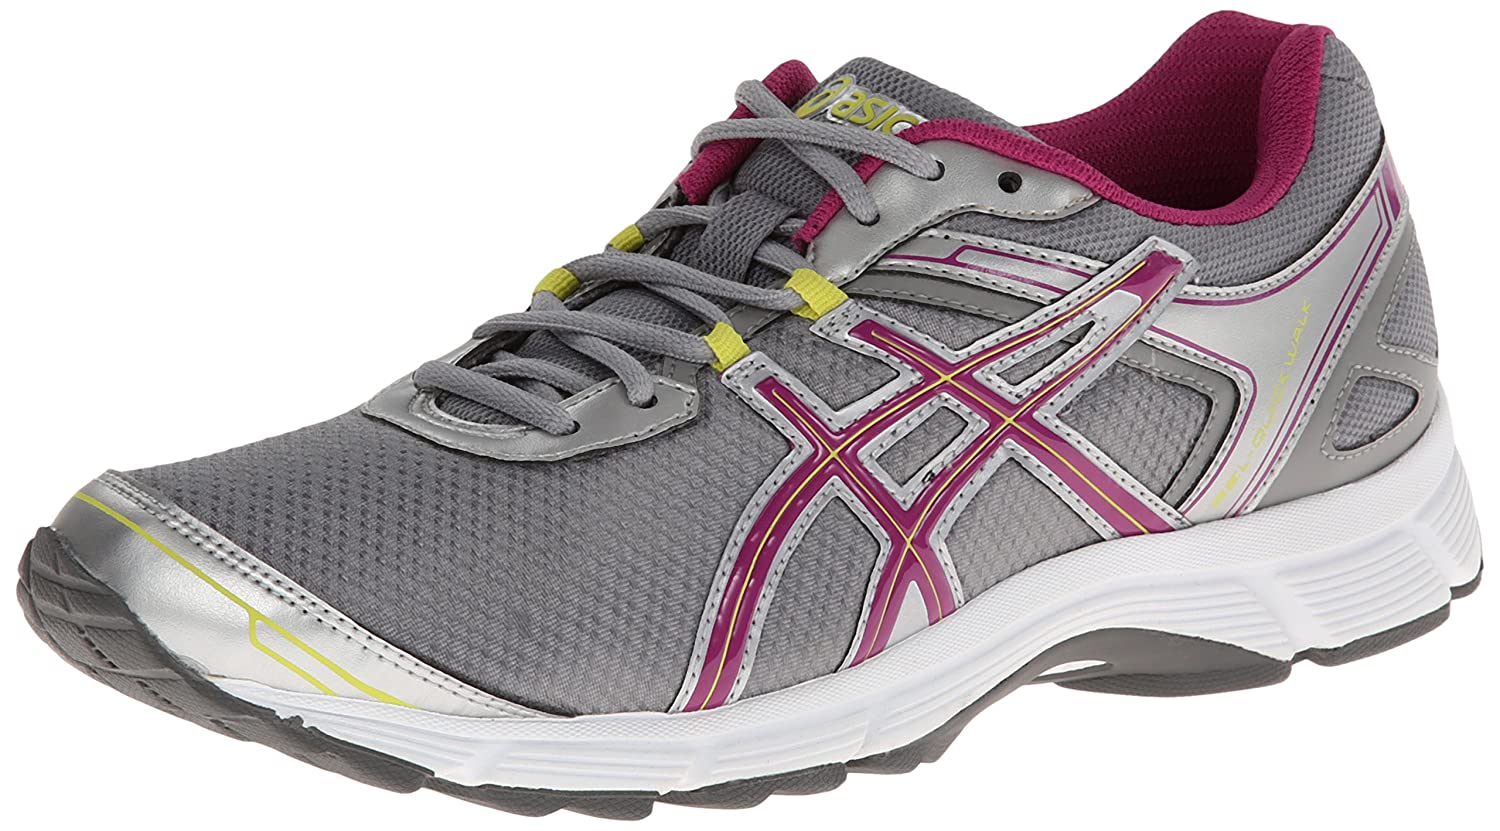 ASICS Women's GEL-Quick WK 2 Walking Shoe